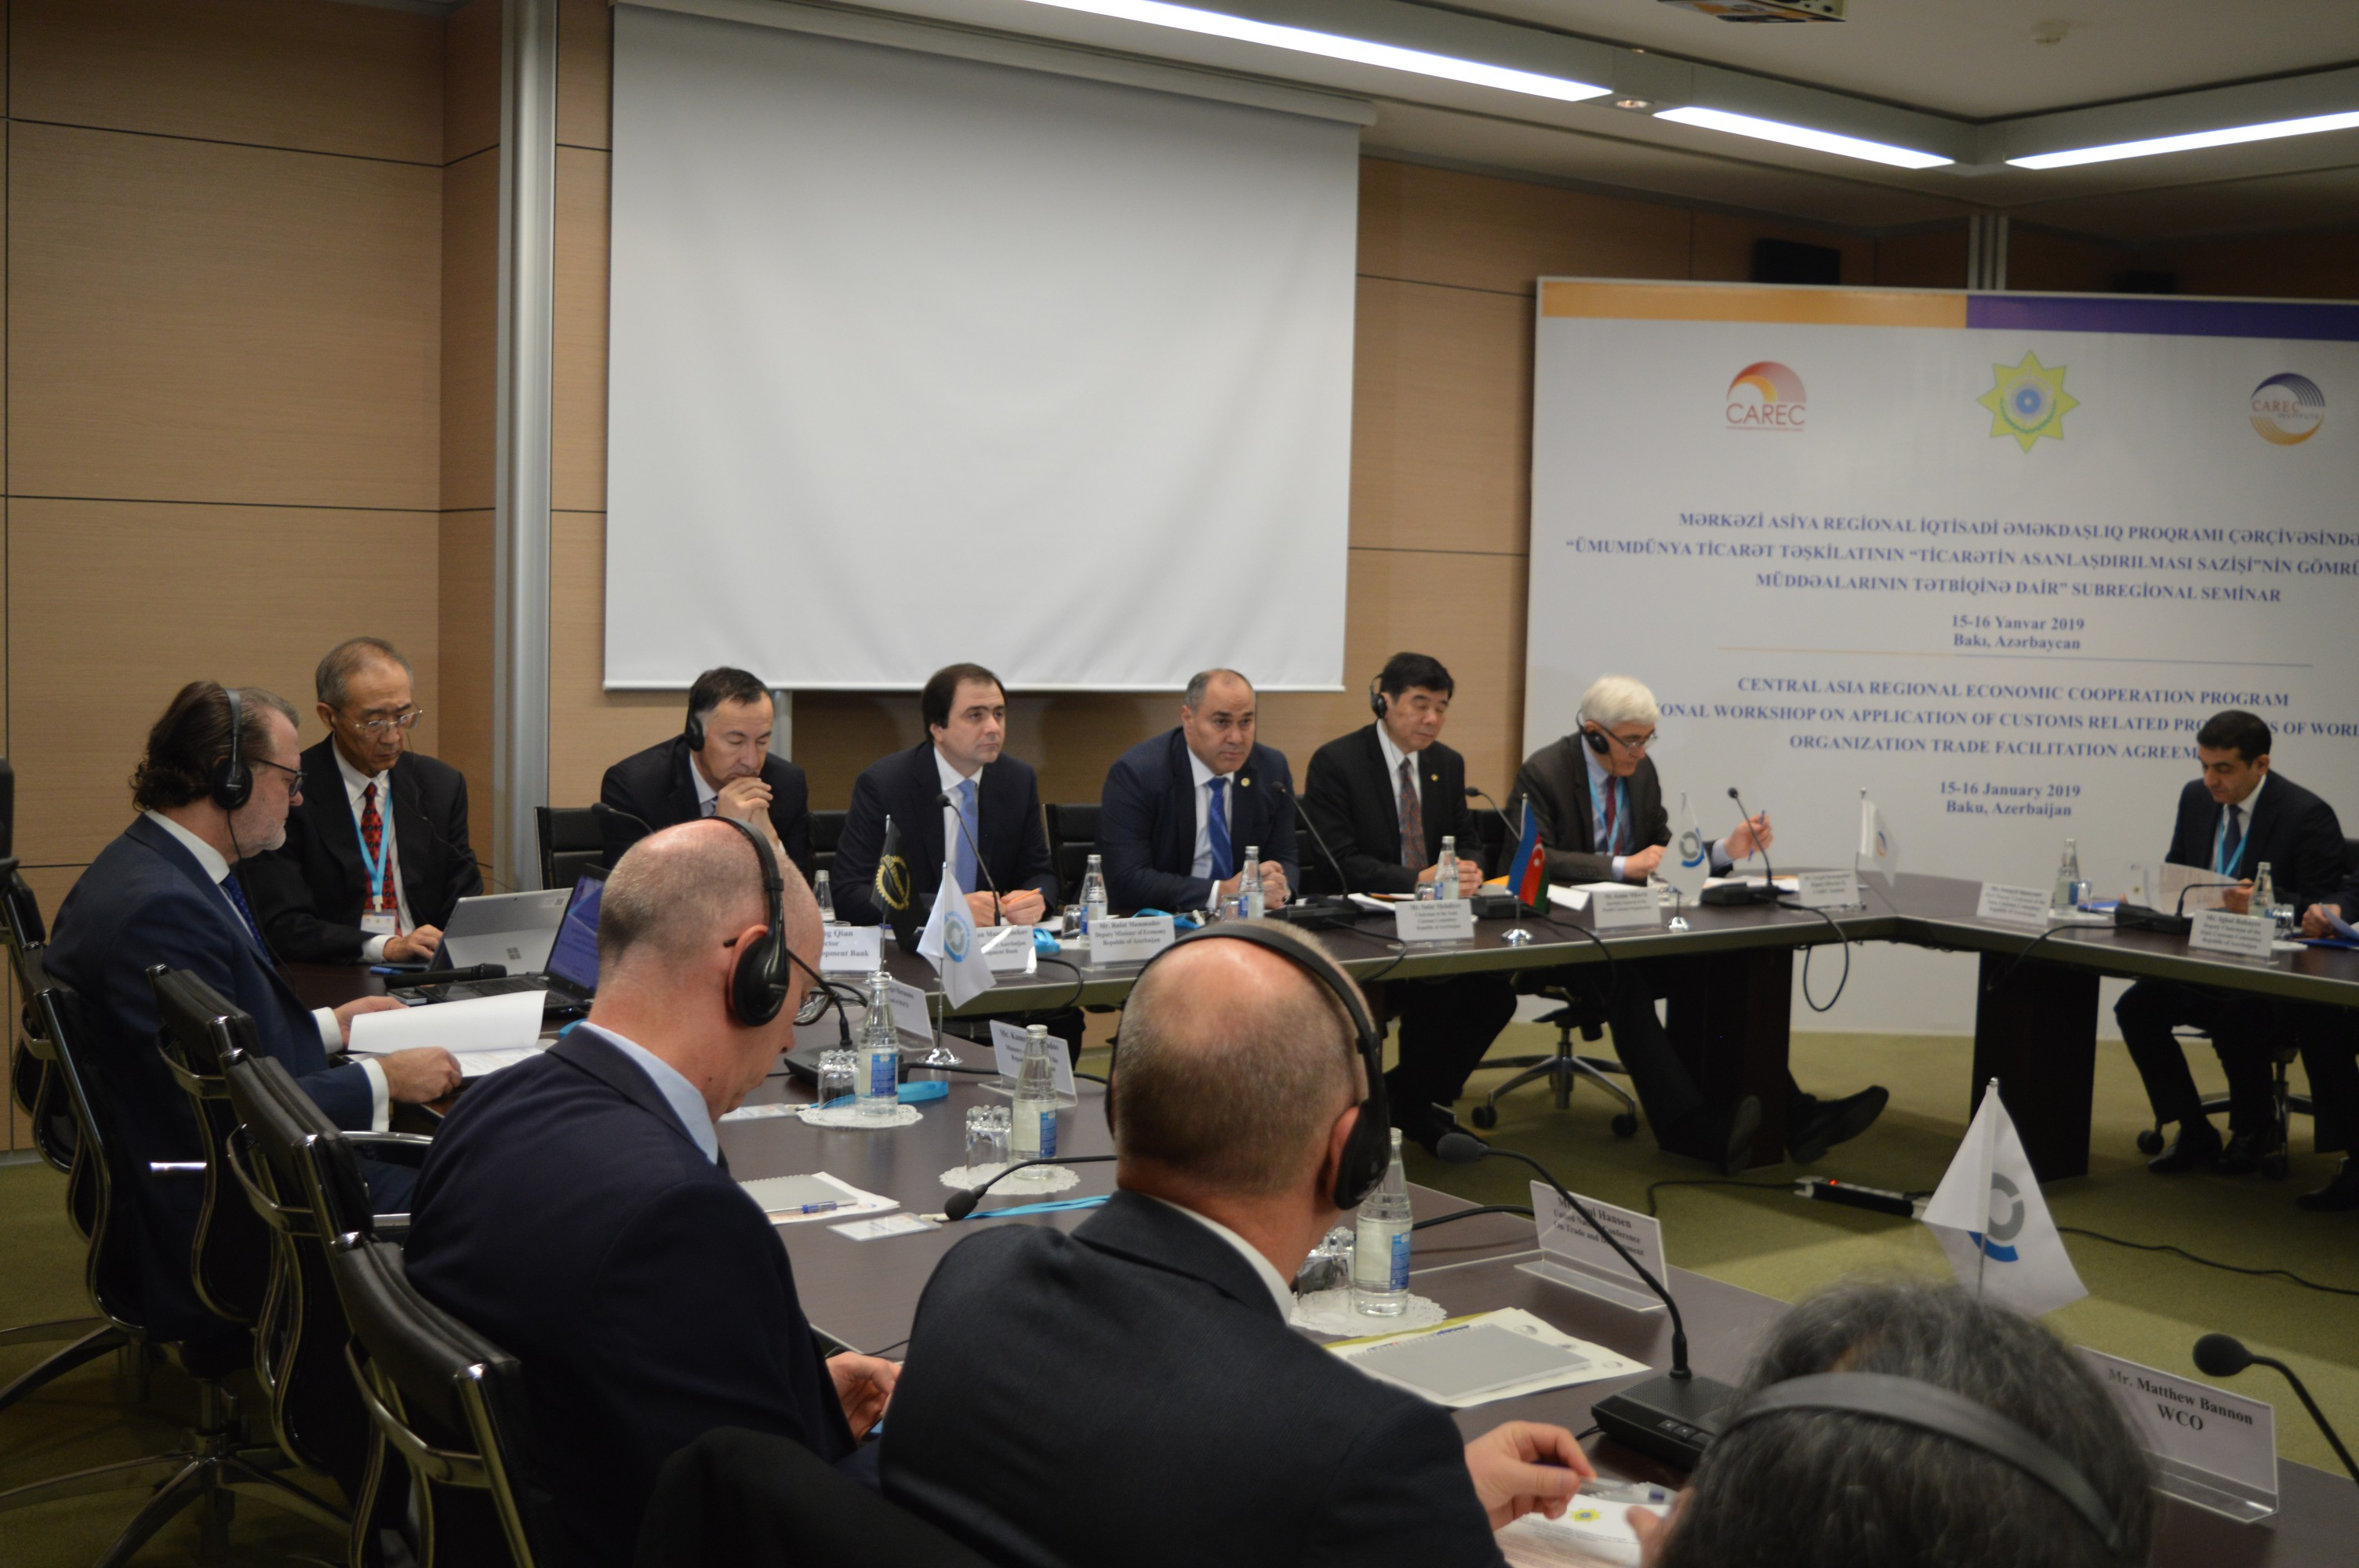 Secretary General of the WCO Mr. Kunio Mikuriya Visits the Regional Office for Capacity Building